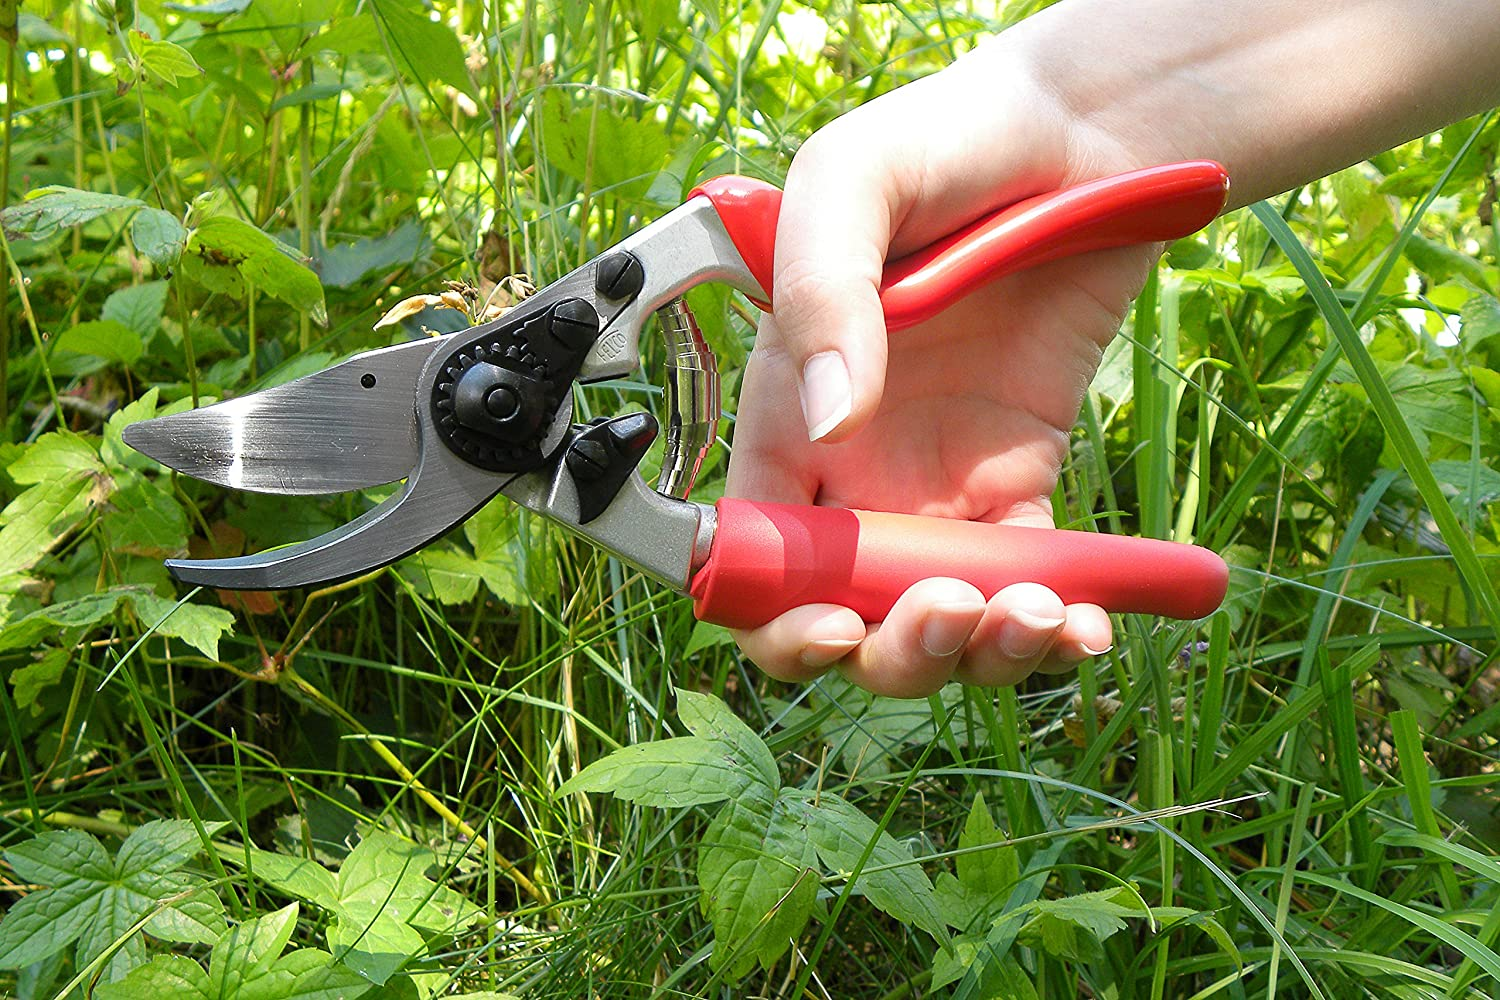 Felco F-7 Gardening Hand Pruner with Rotating Handle